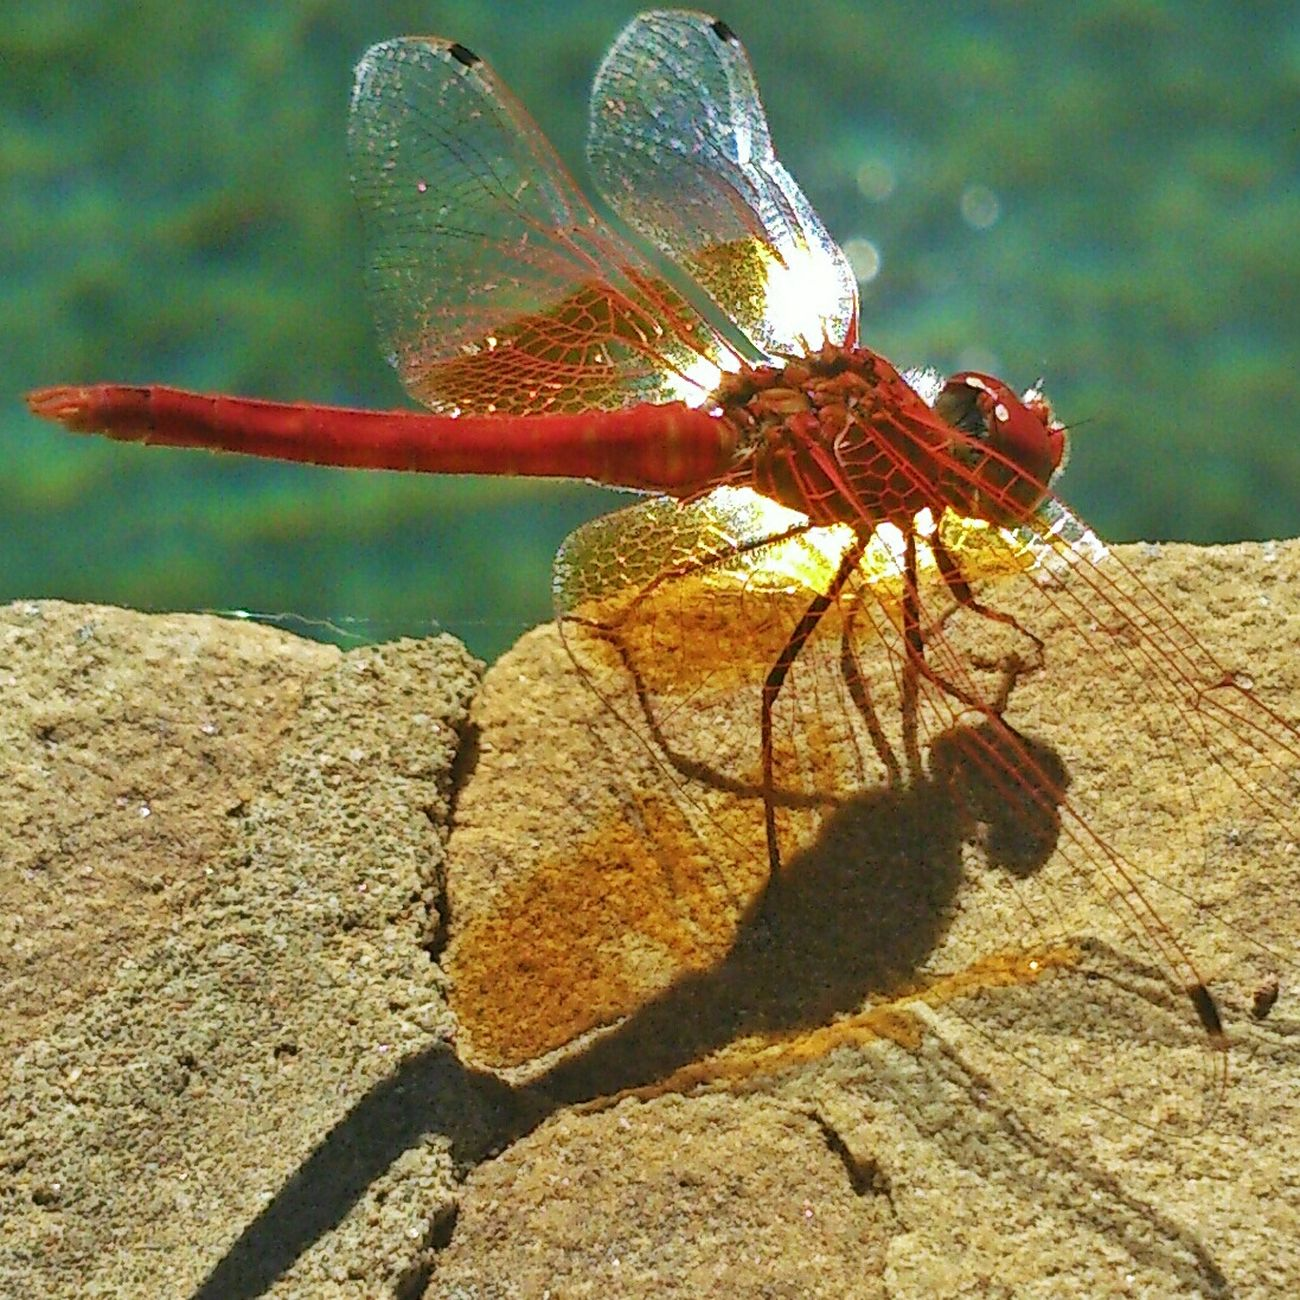 Dragonfly Natgeo Mobilephotography AMPt Community